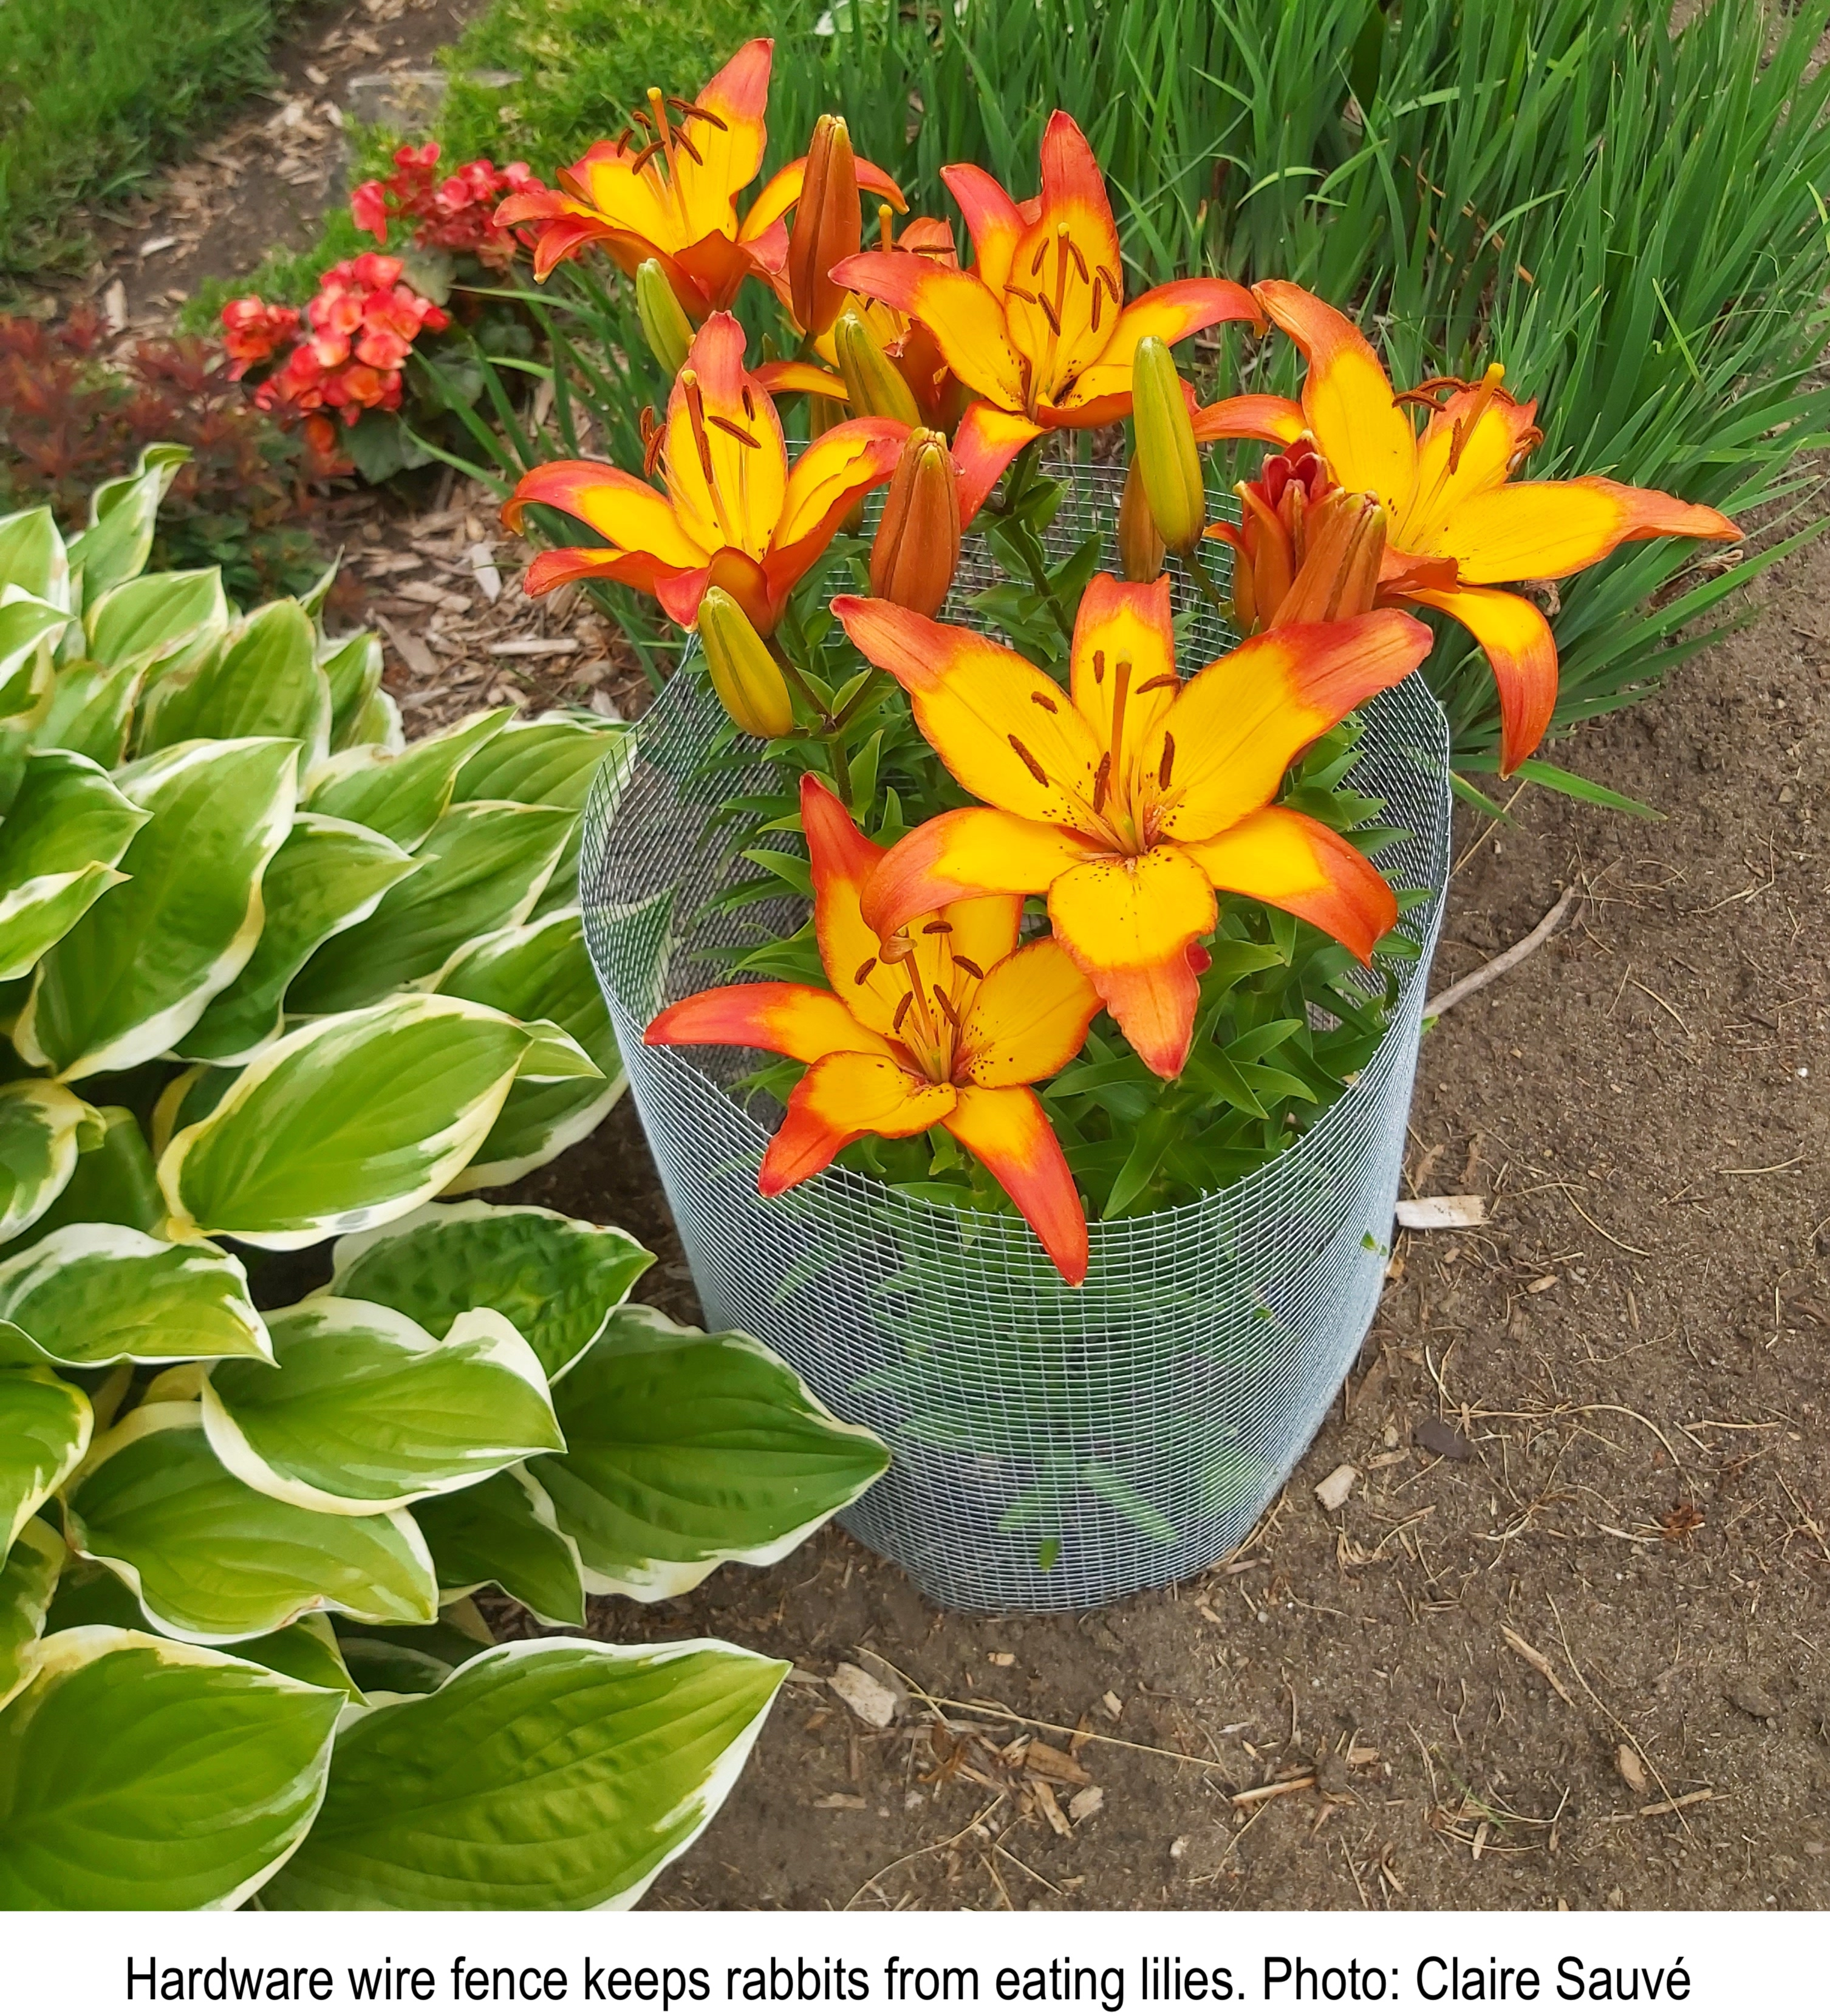 Hardware wire fence surrounding lilies.